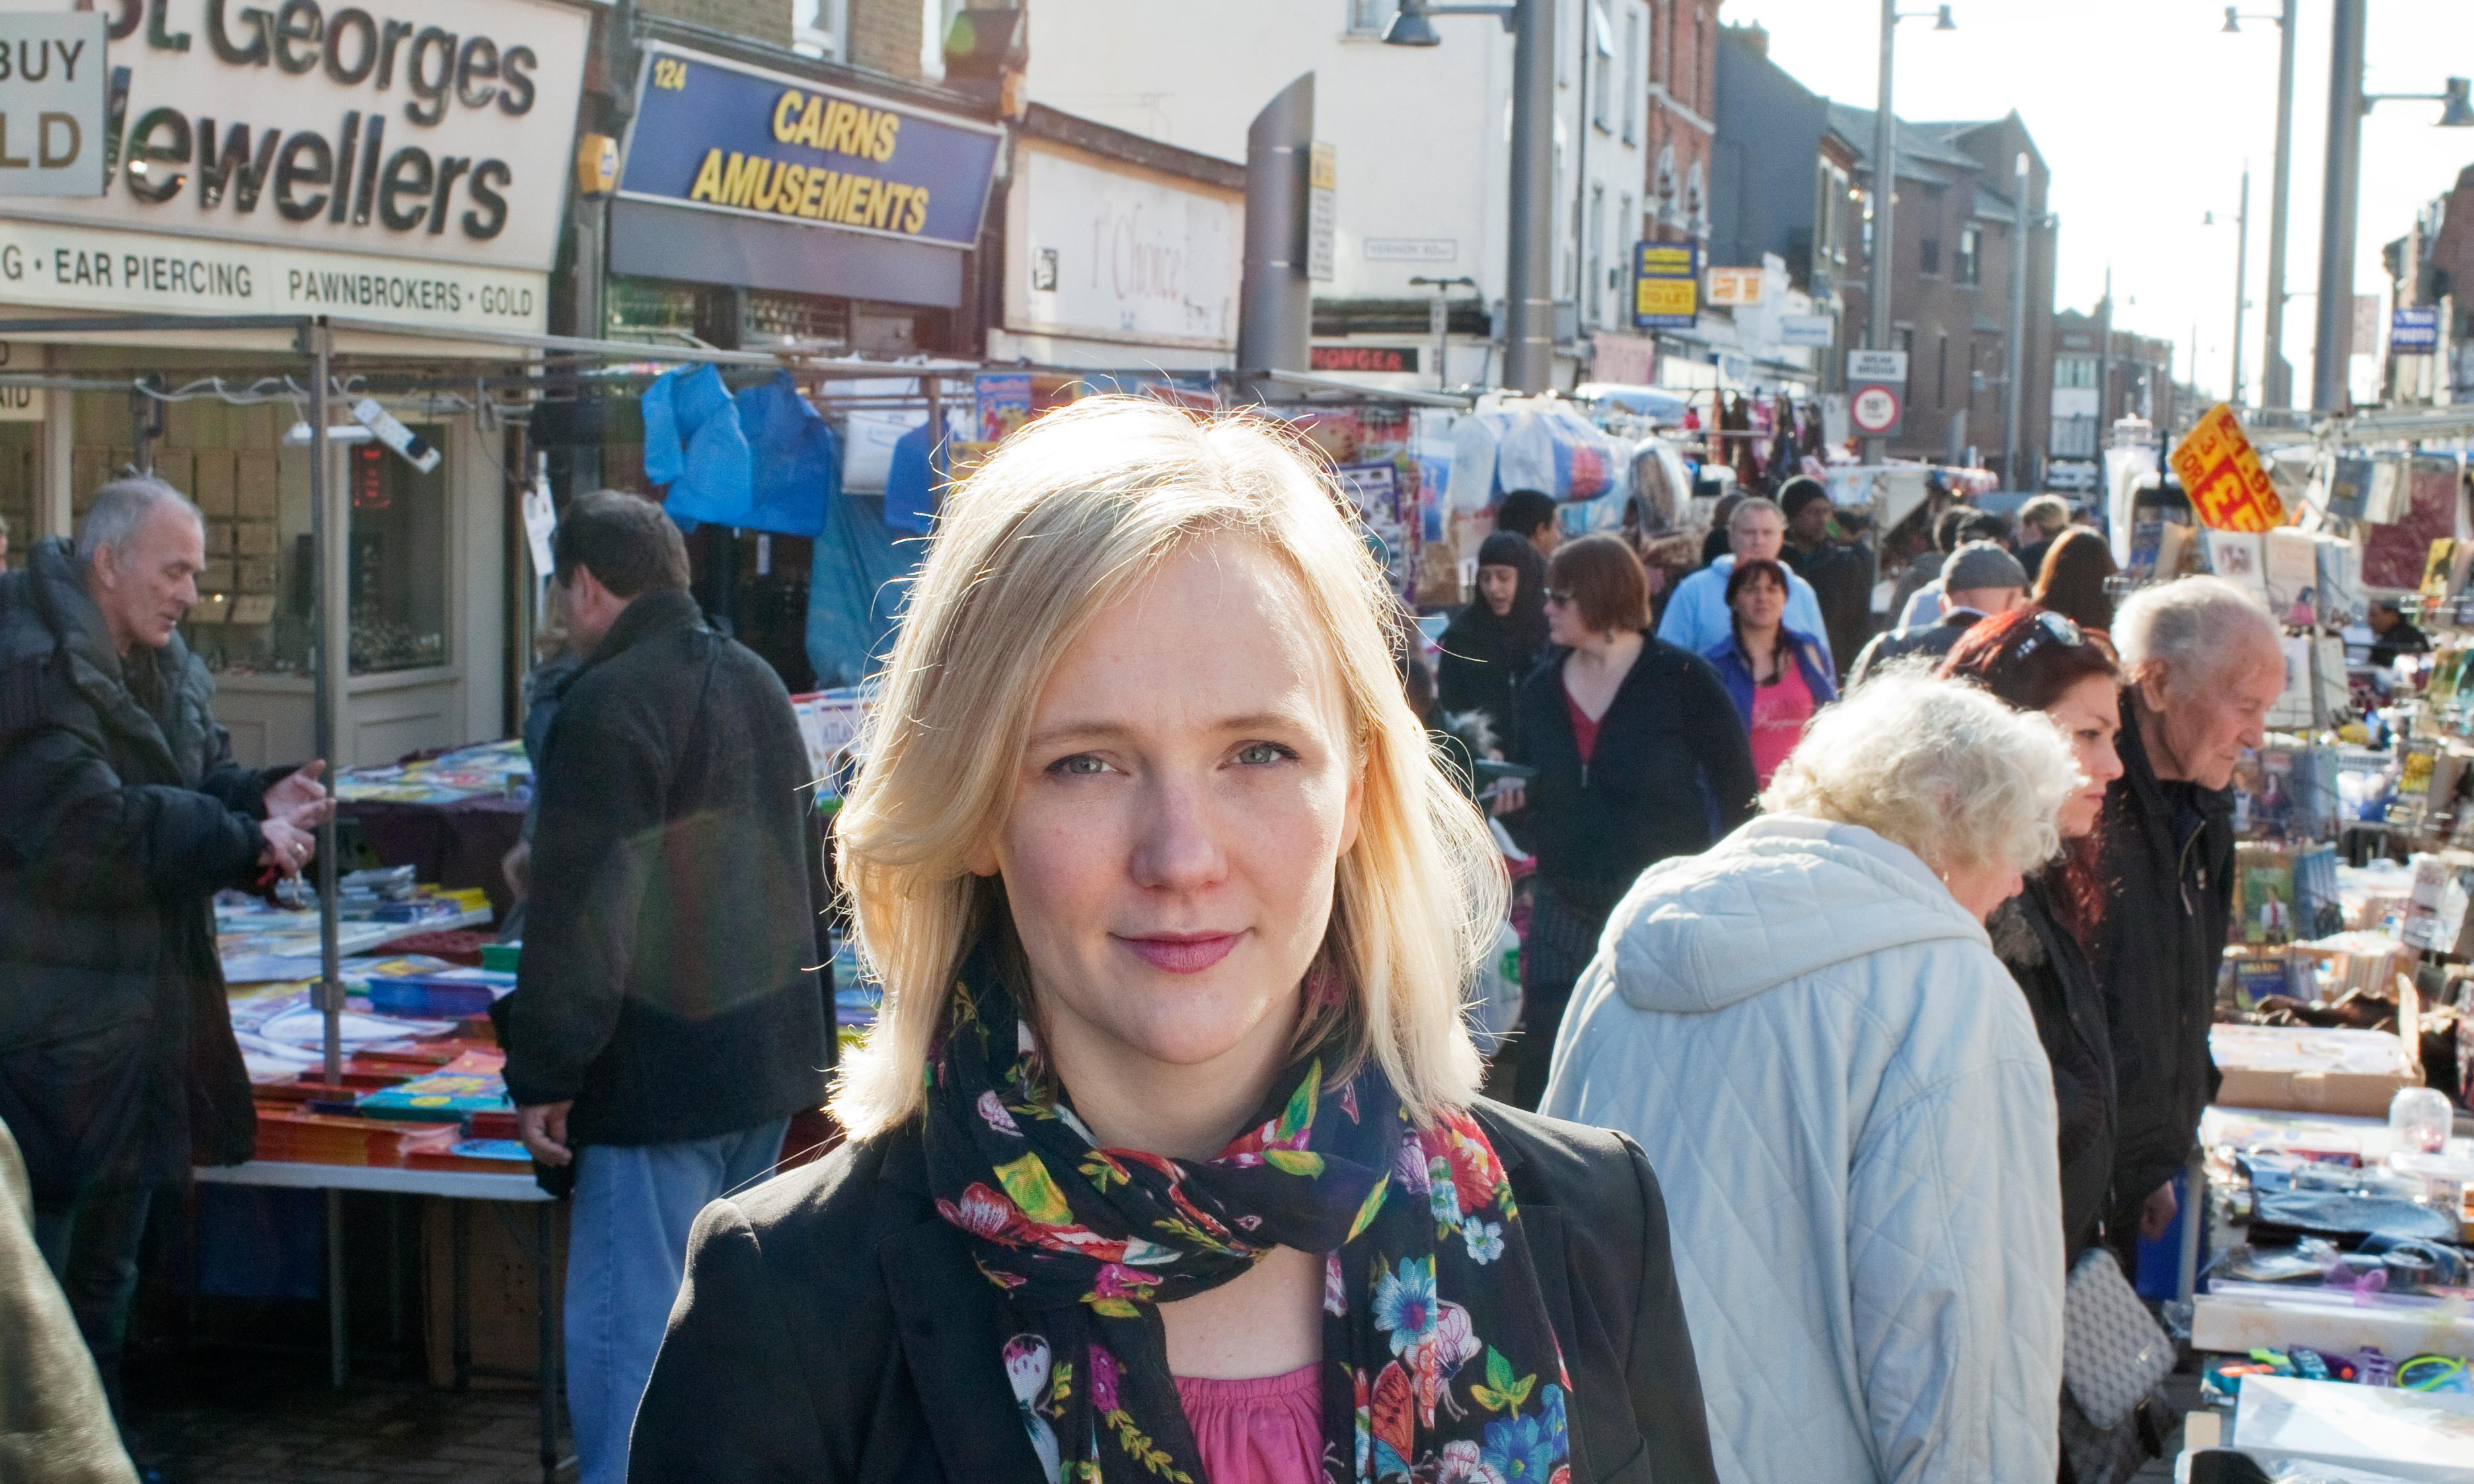 Council orders removal of anti-abortion poster targeting Stella Creasy